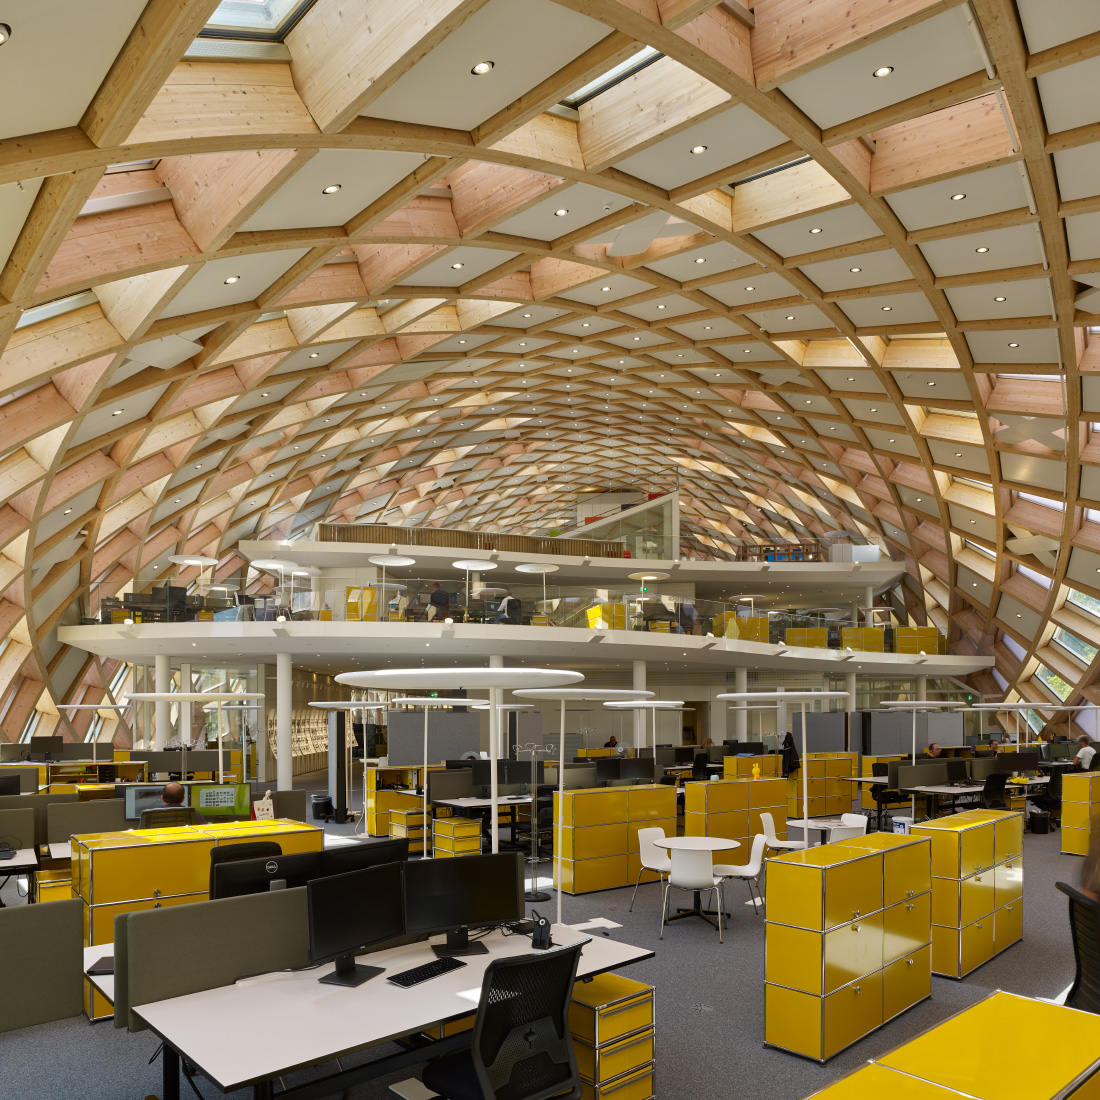 Interior of the Swatch office, with a timber coffered ceiling